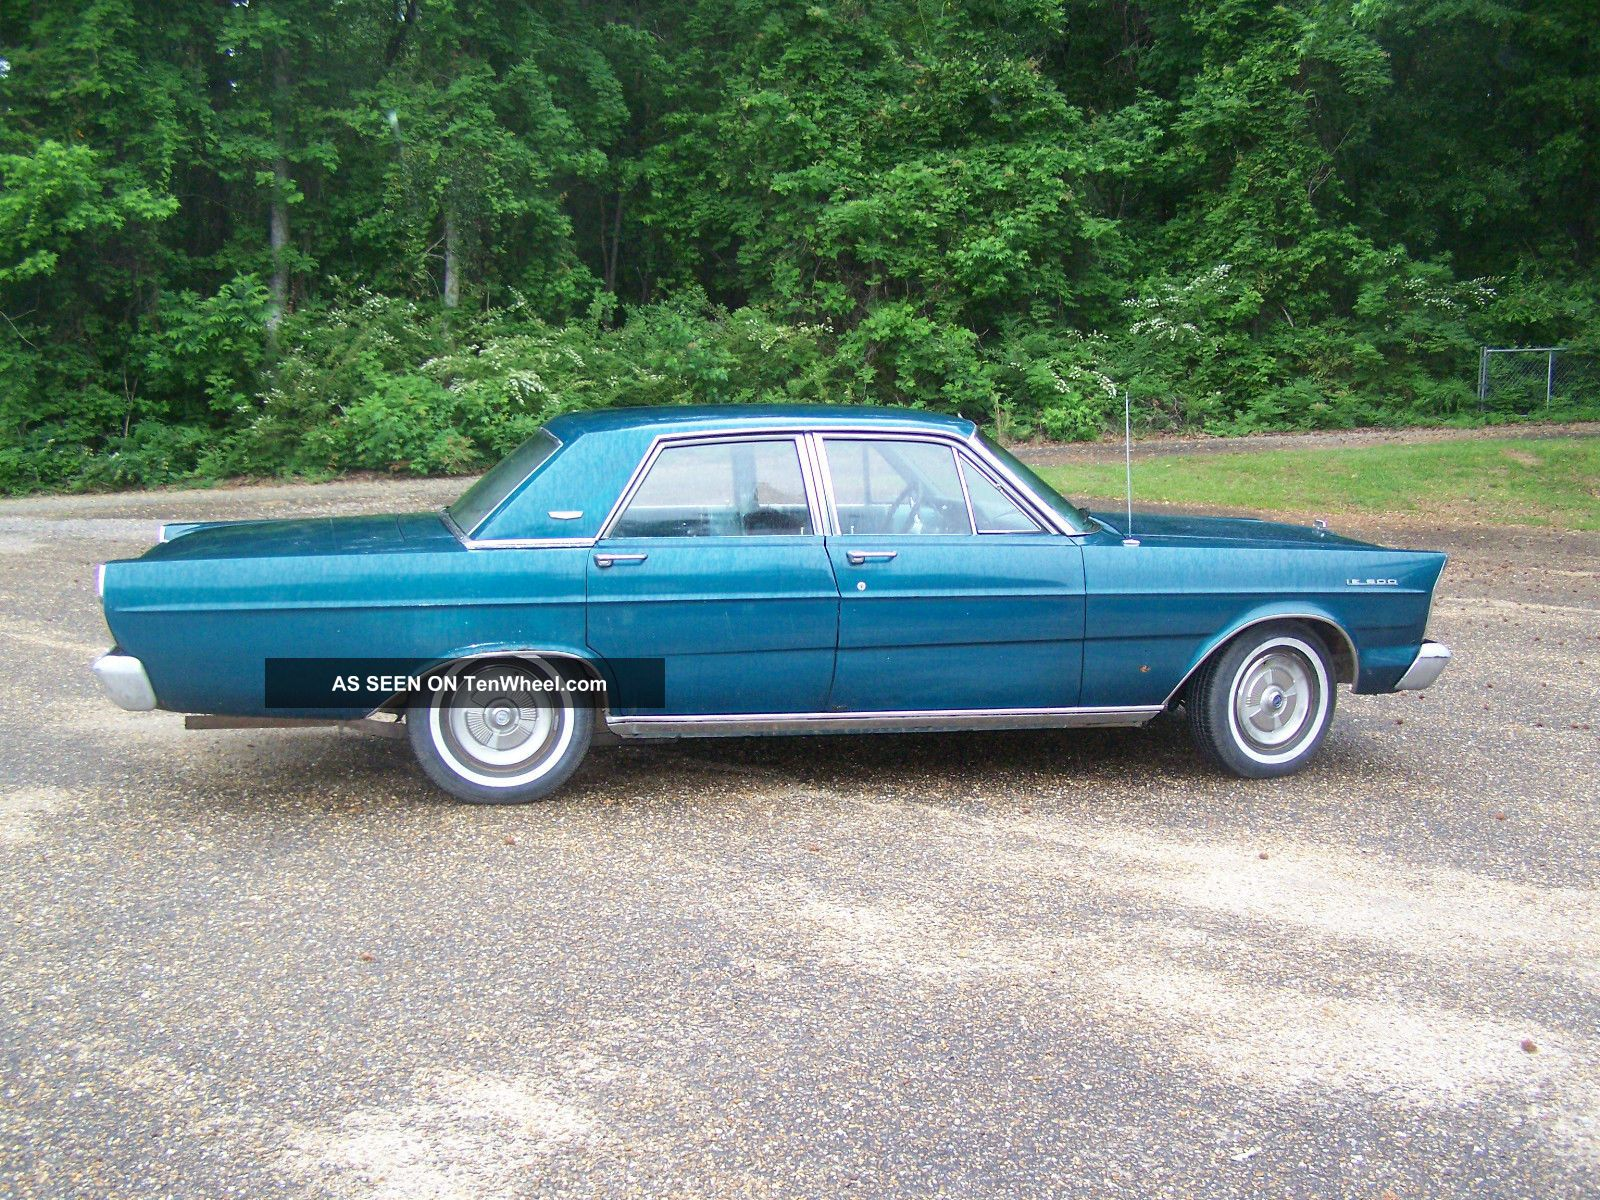 1965 Ford Galaxie 500 4 Door With 390 4 Barrel And ...  1965 Ford Galax...